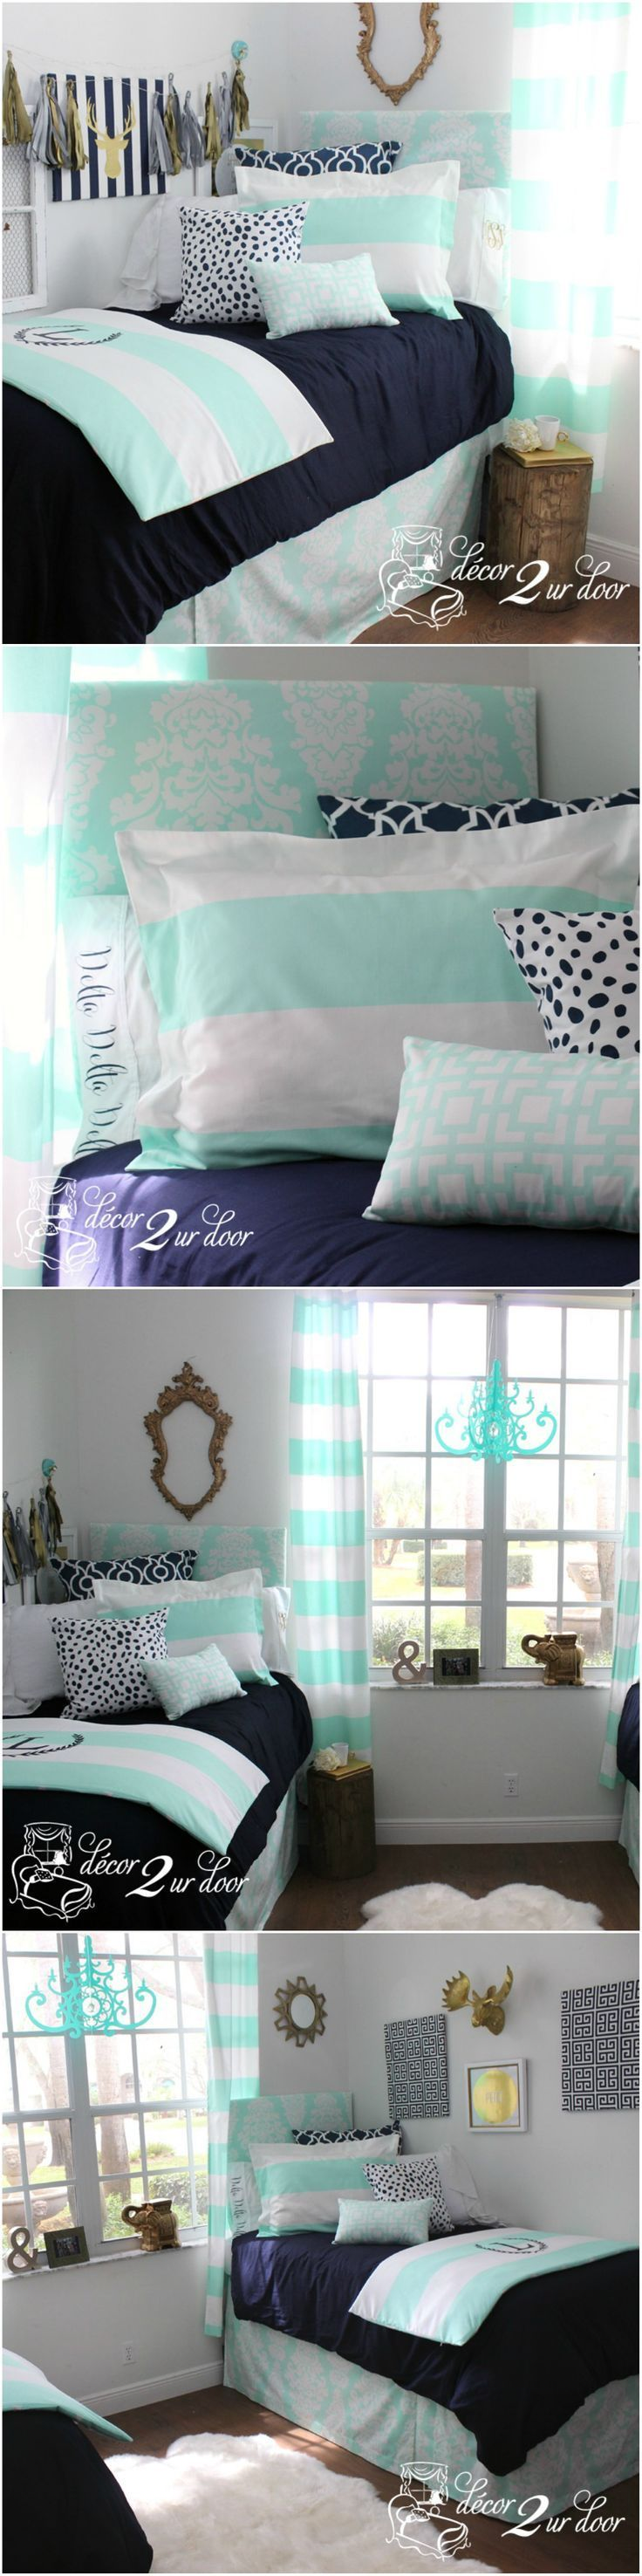 This dorm room totally MINT to be! Get it?! Our brand new mint wide stripe is complimented by bold navy pattern and navy Dalmatian print to create the perfect custom dorm bedding. It can't get much better than this! We adore this new damask inspired pattern in soothing mint and navy.